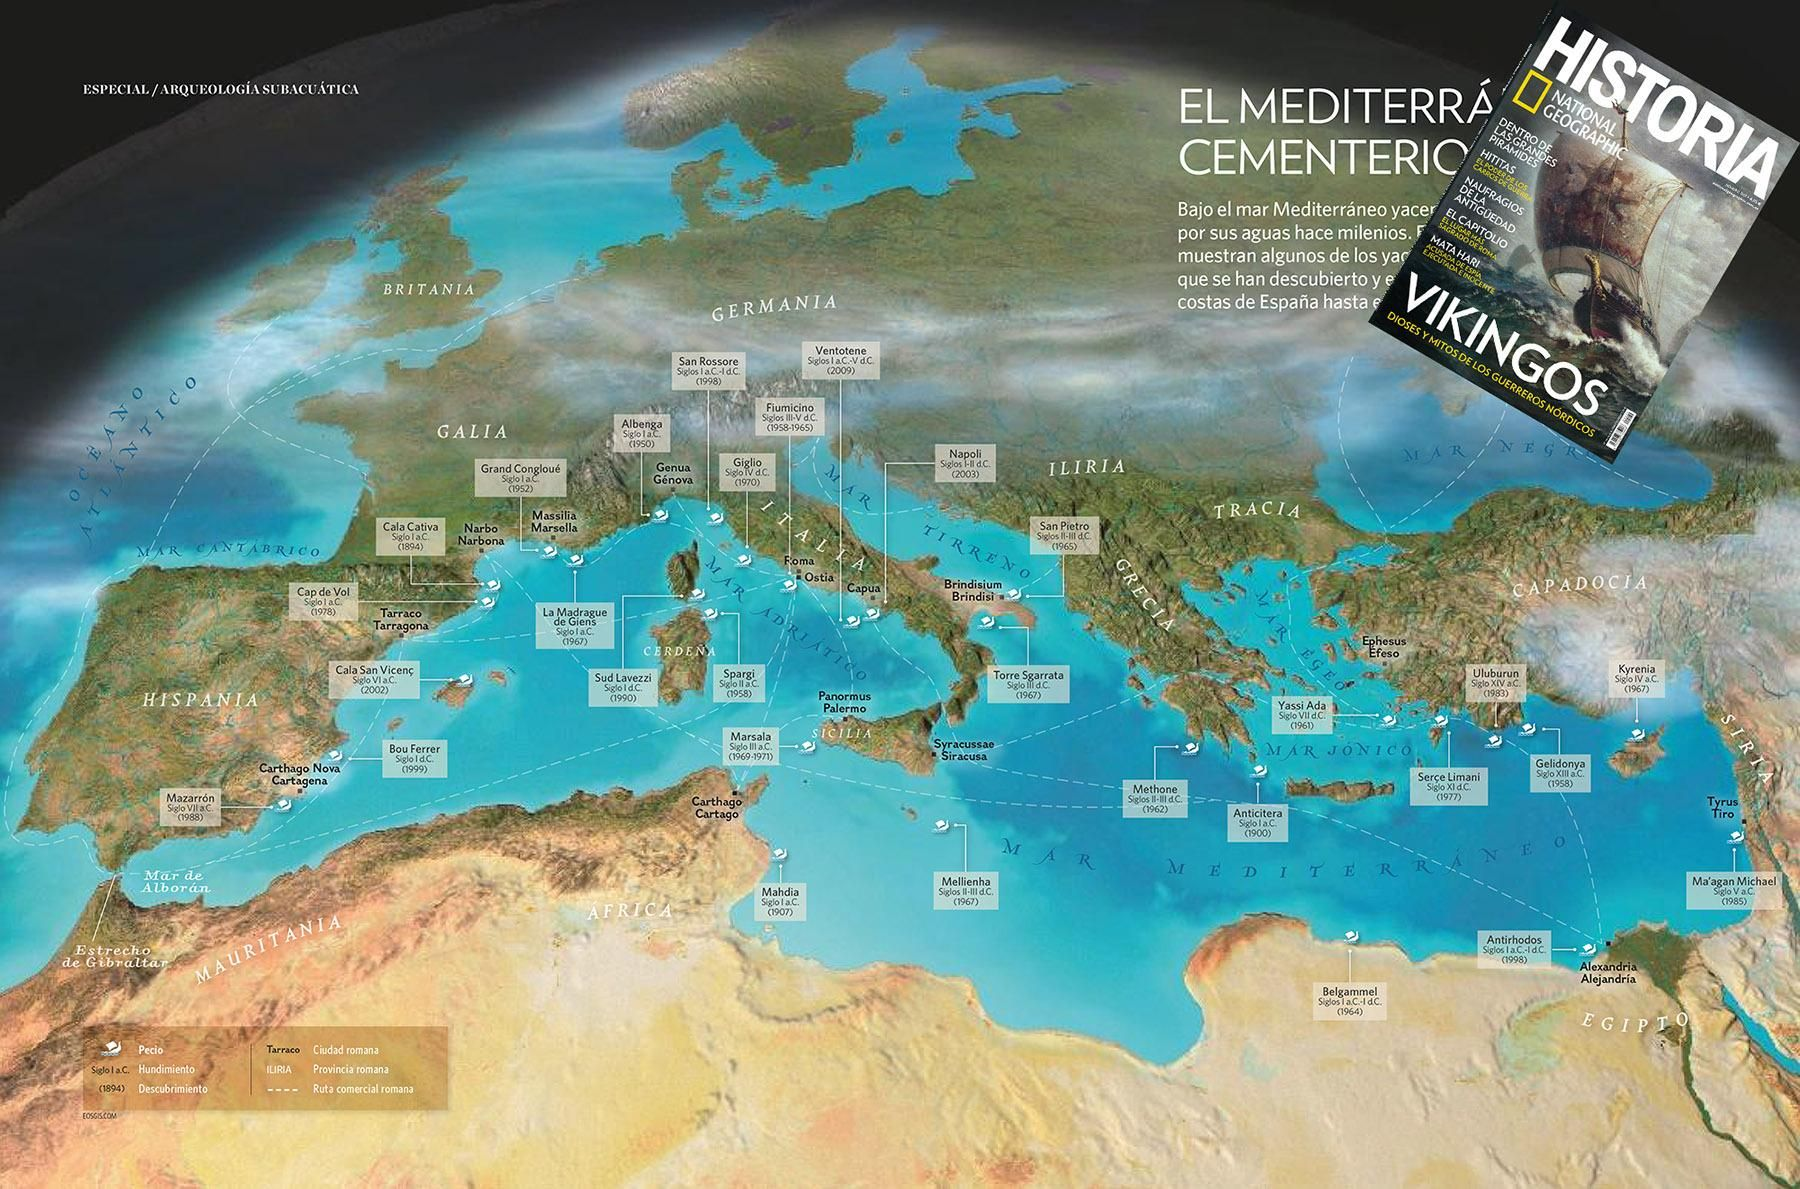 Ancient shipwrecks in the Mediterranean, map by EOSGIS for Natgeo ...